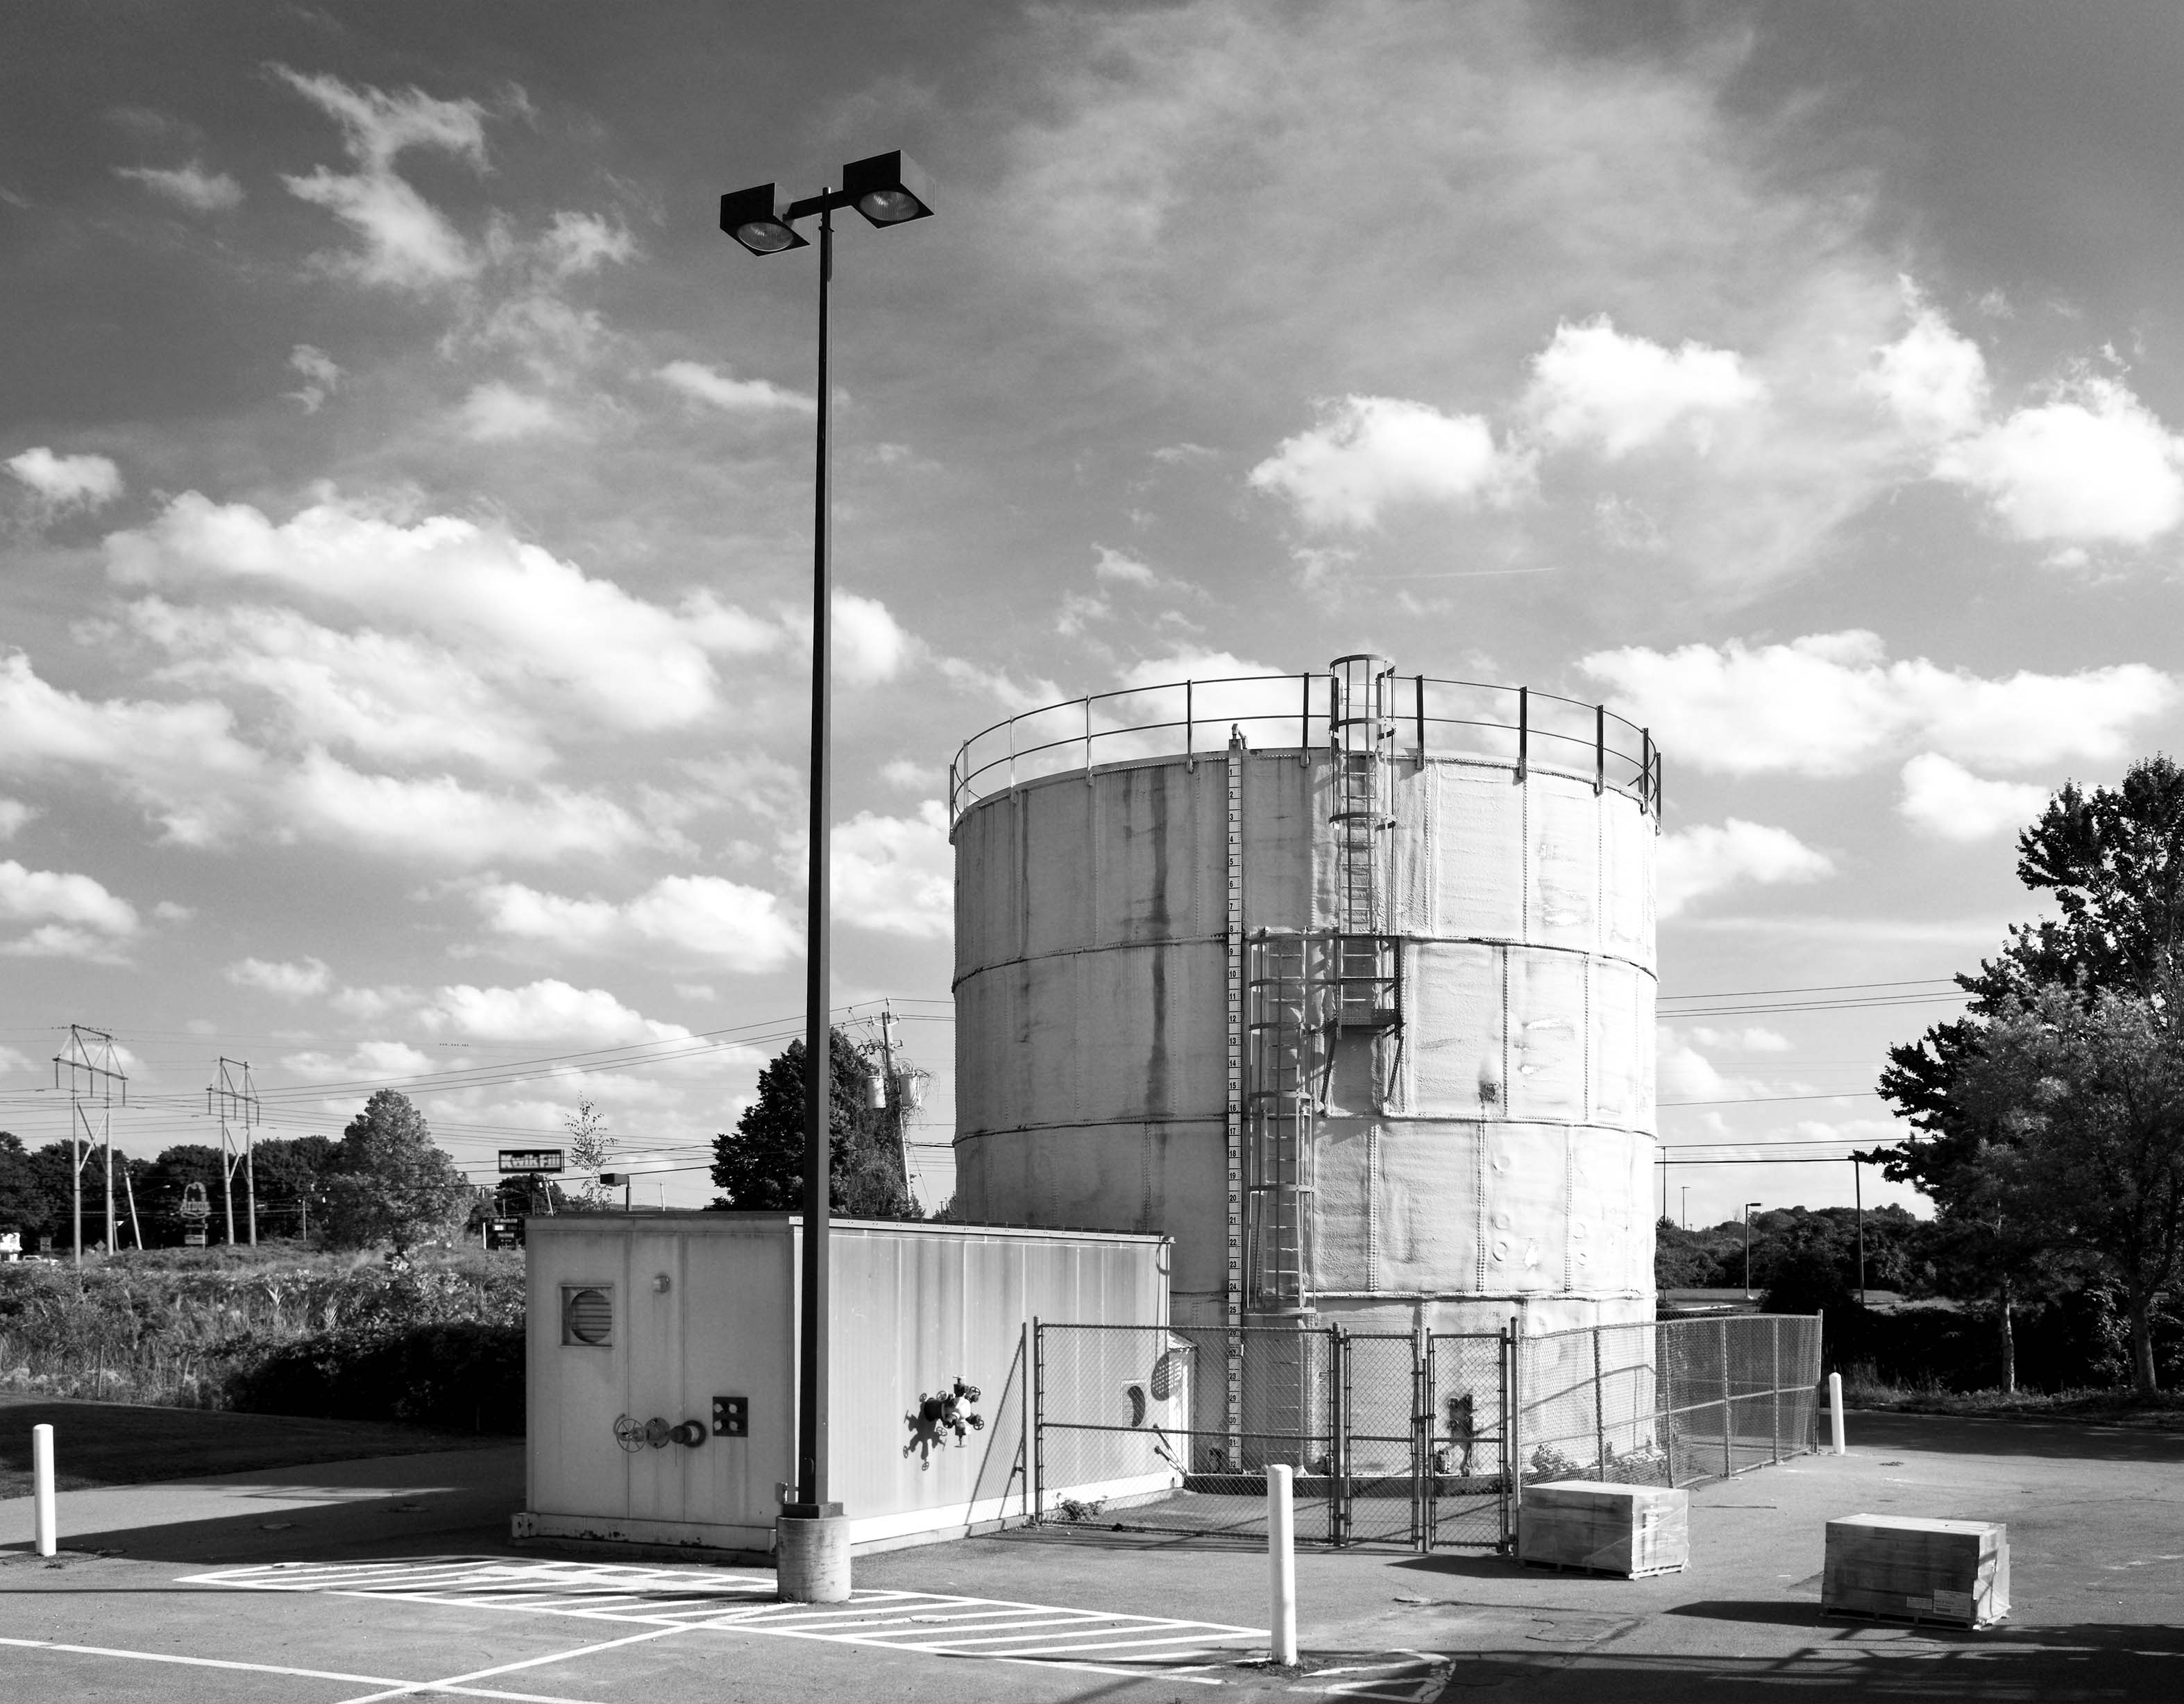 Storage Tank - Fredonia, New York - 2018